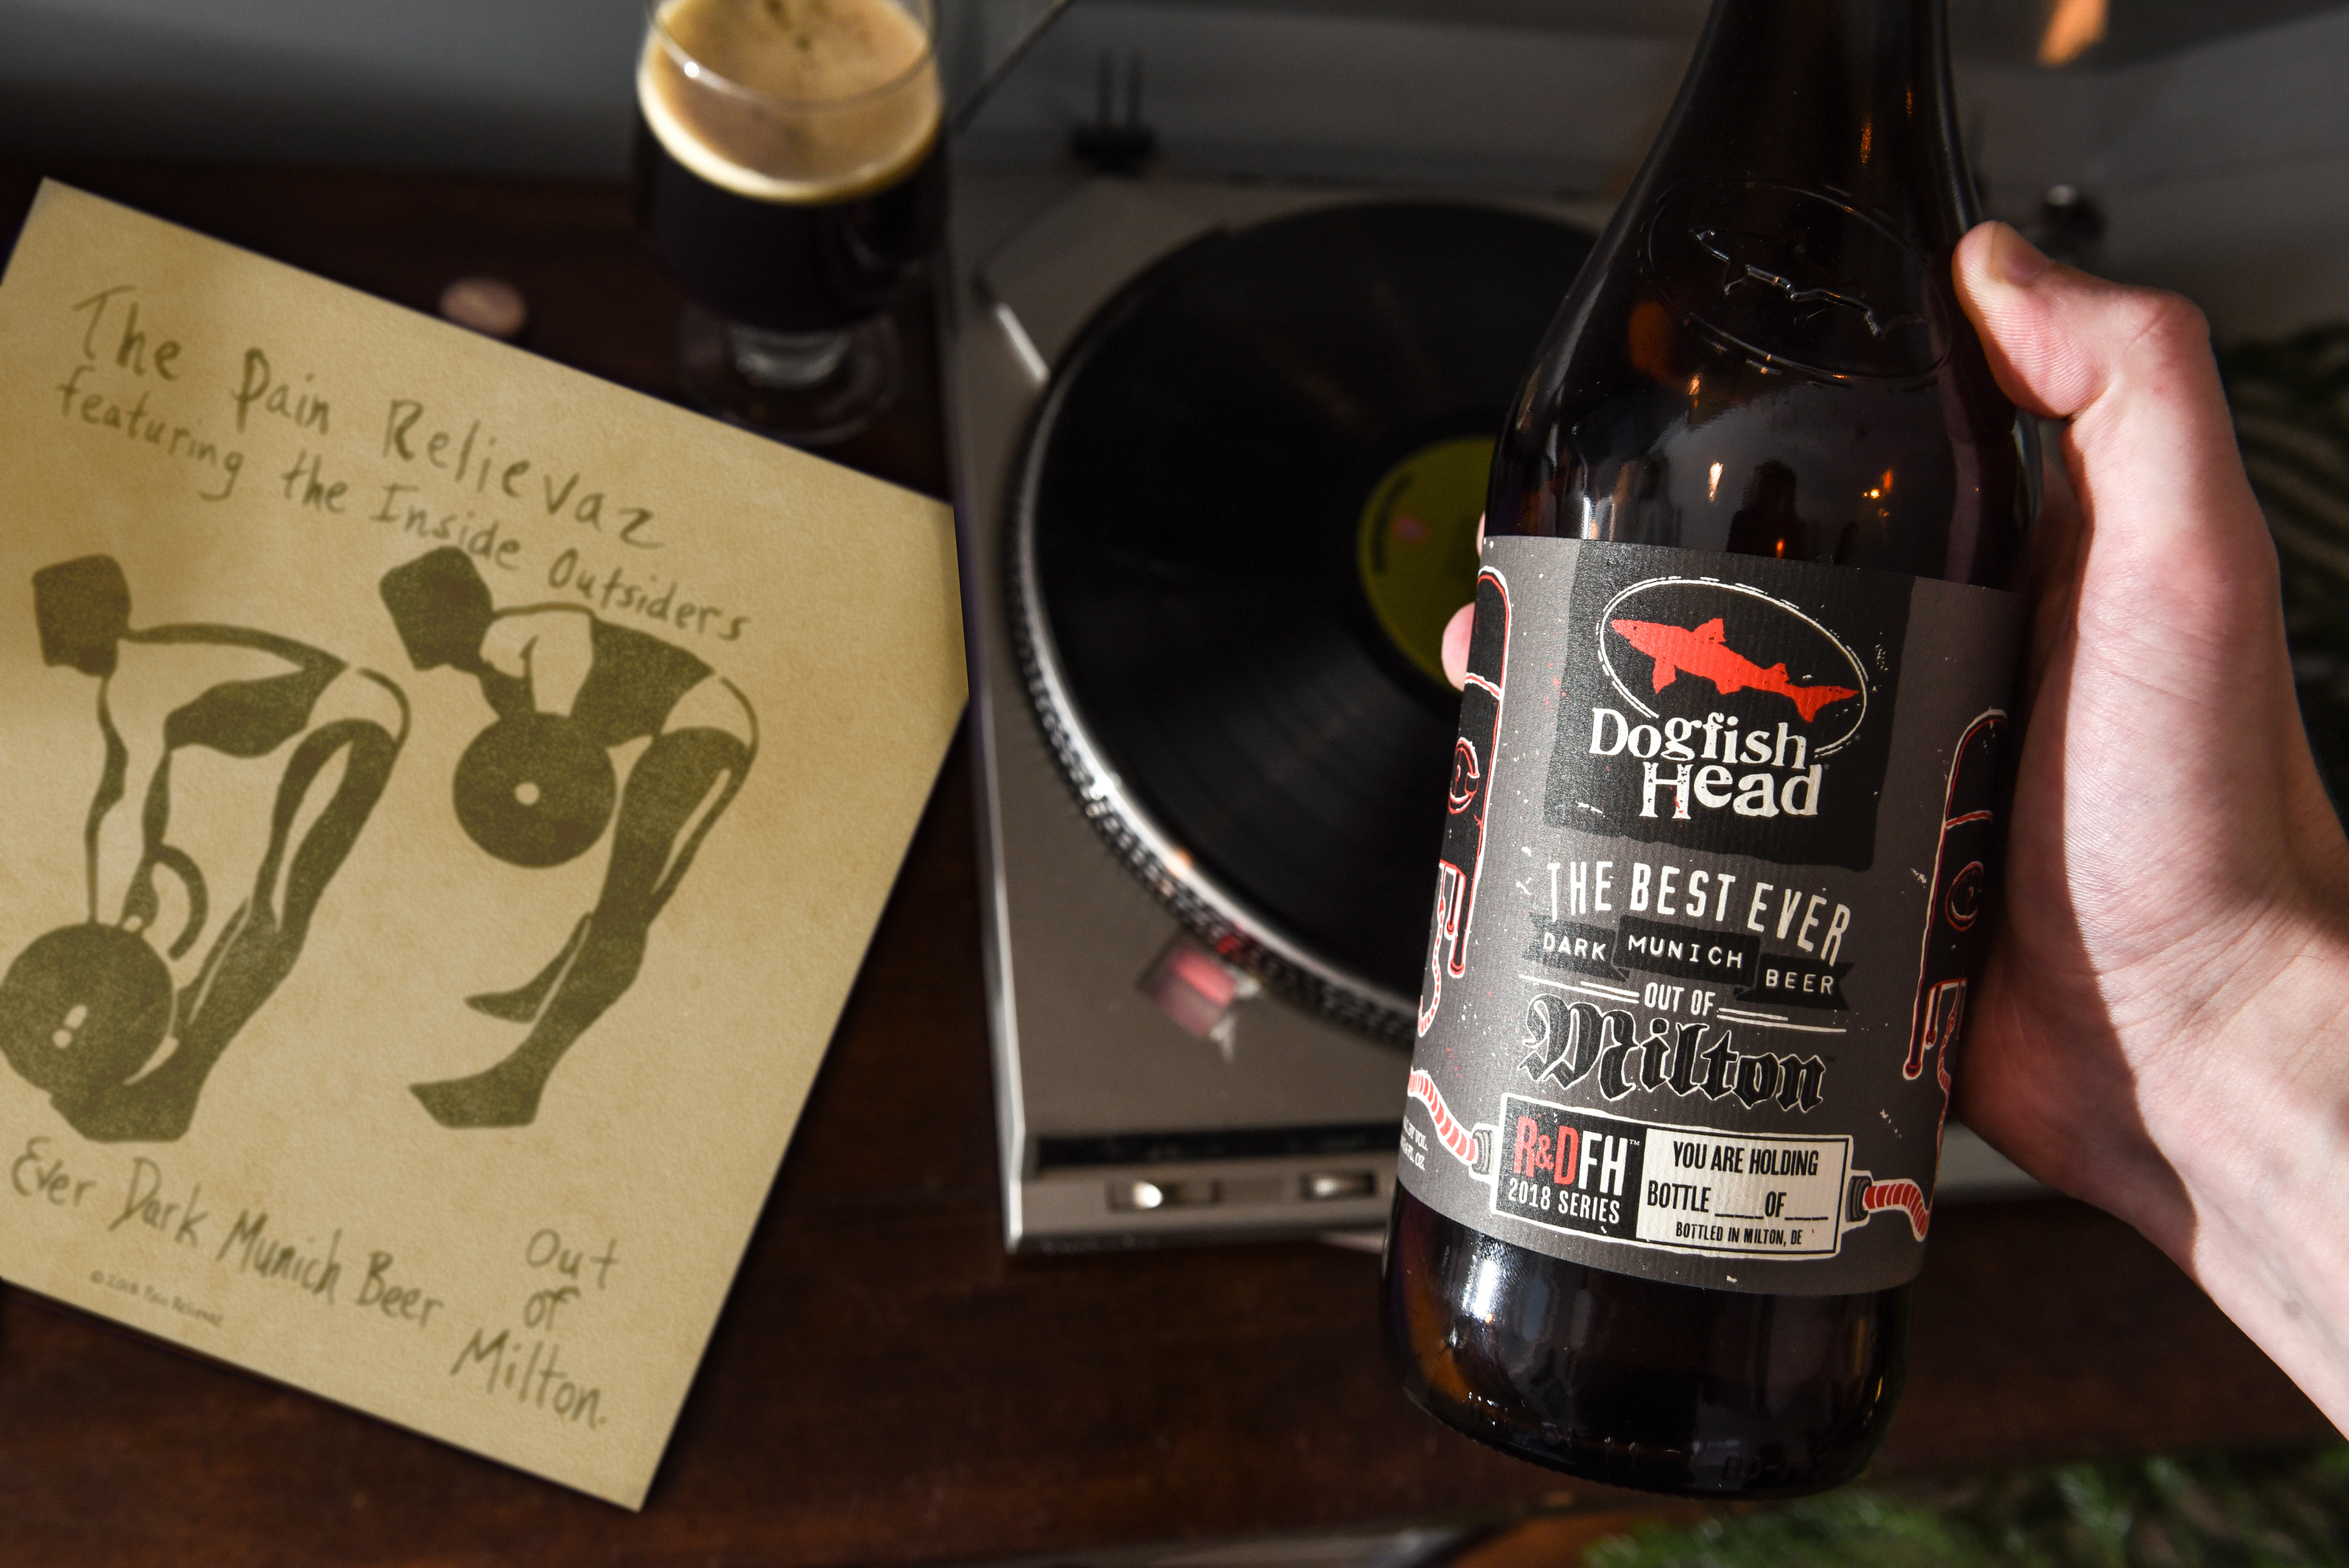 dogfish head to release 'the best ever dark munich beer out of